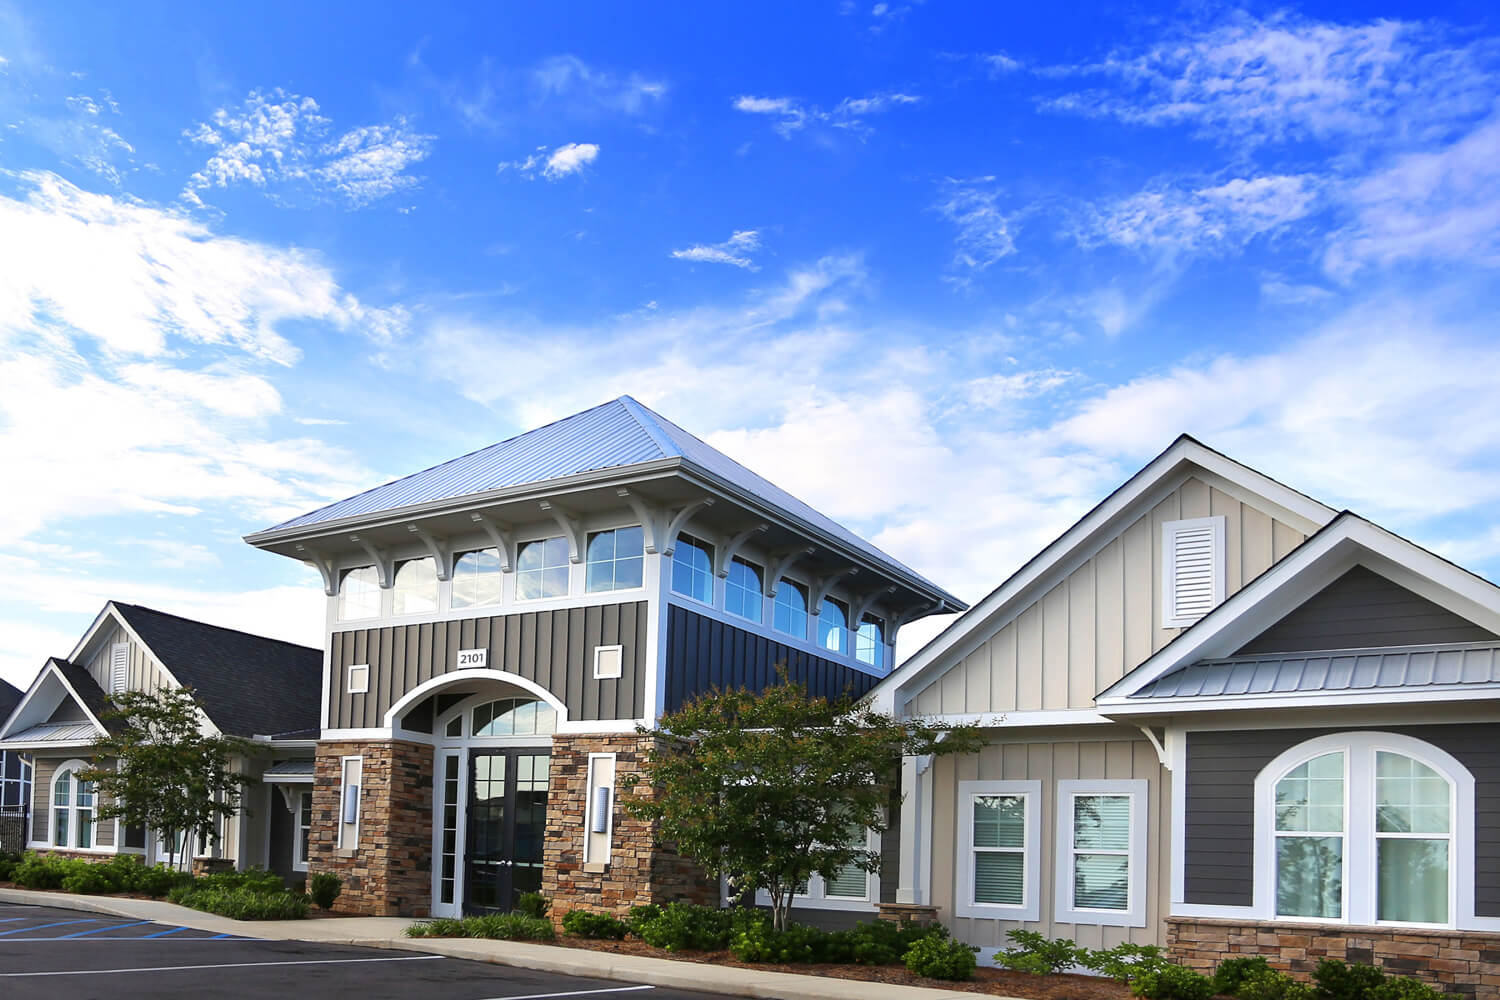 The Morgan Apartments Clubhouse Designed by Foshee Architecture - View of Front Elevation